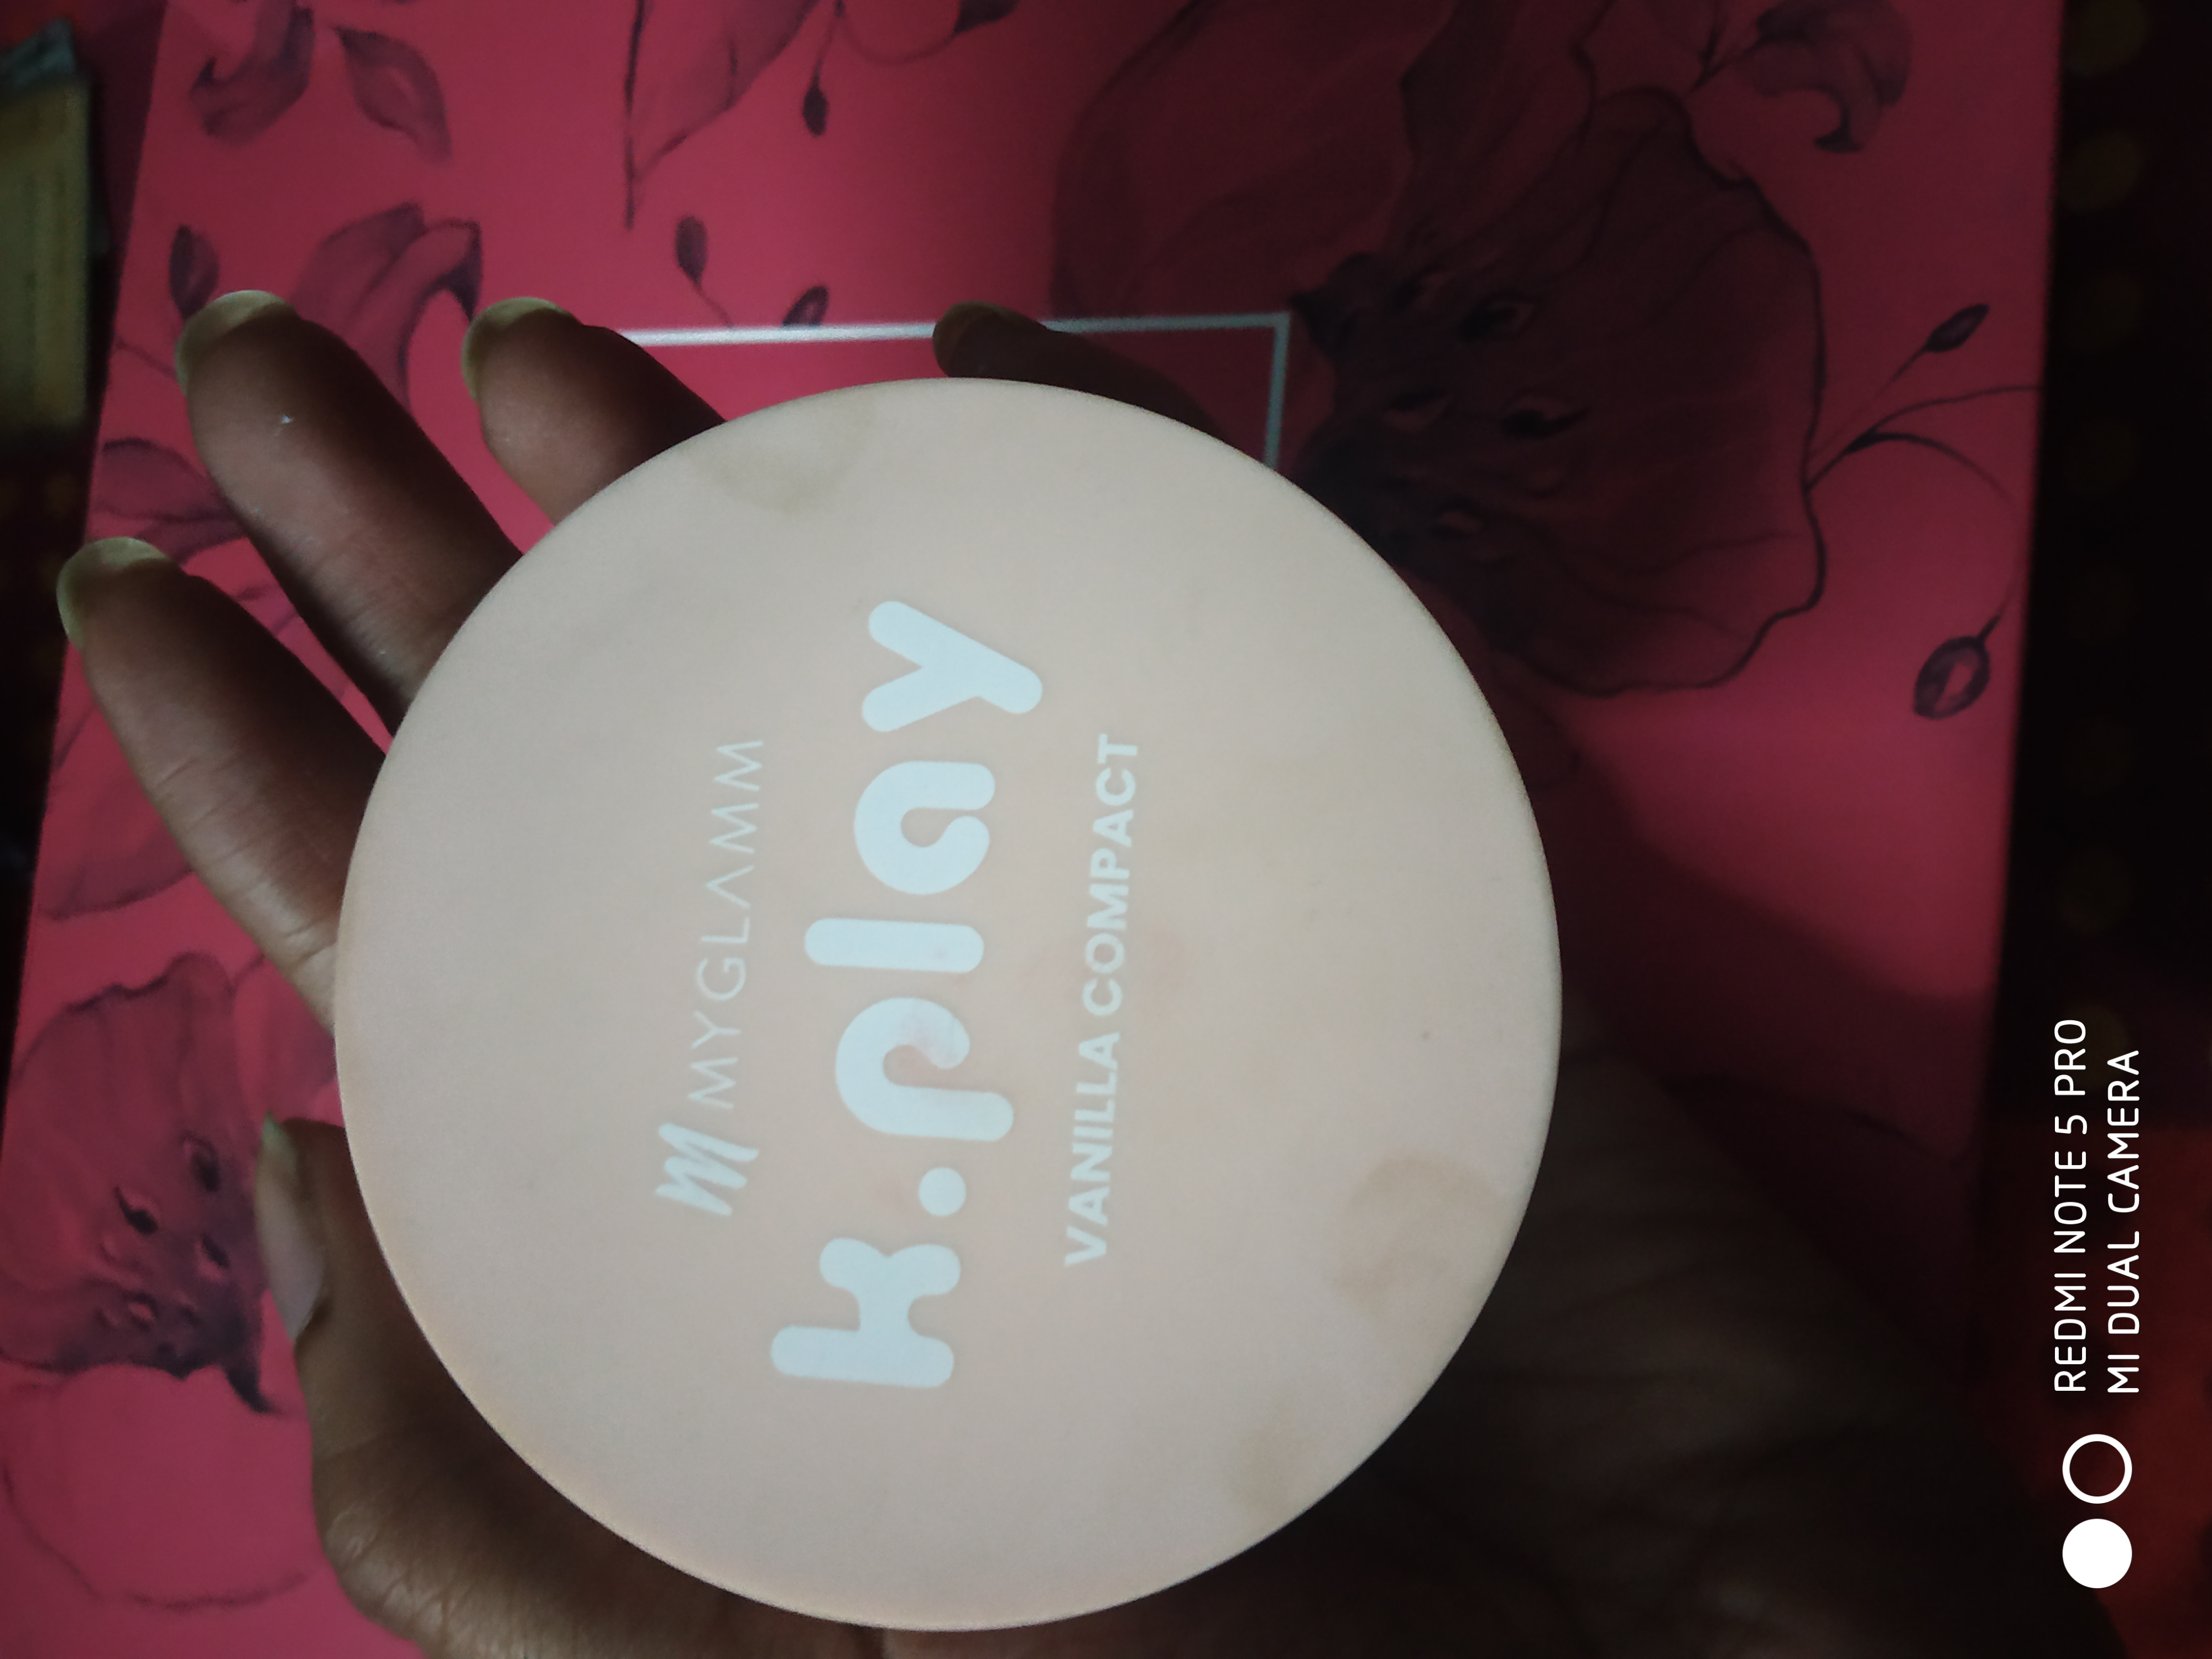 MyGlamm K.PLAY FLAVOURED COMPACT-Absolutely love the product-By priyadarshini_08-2